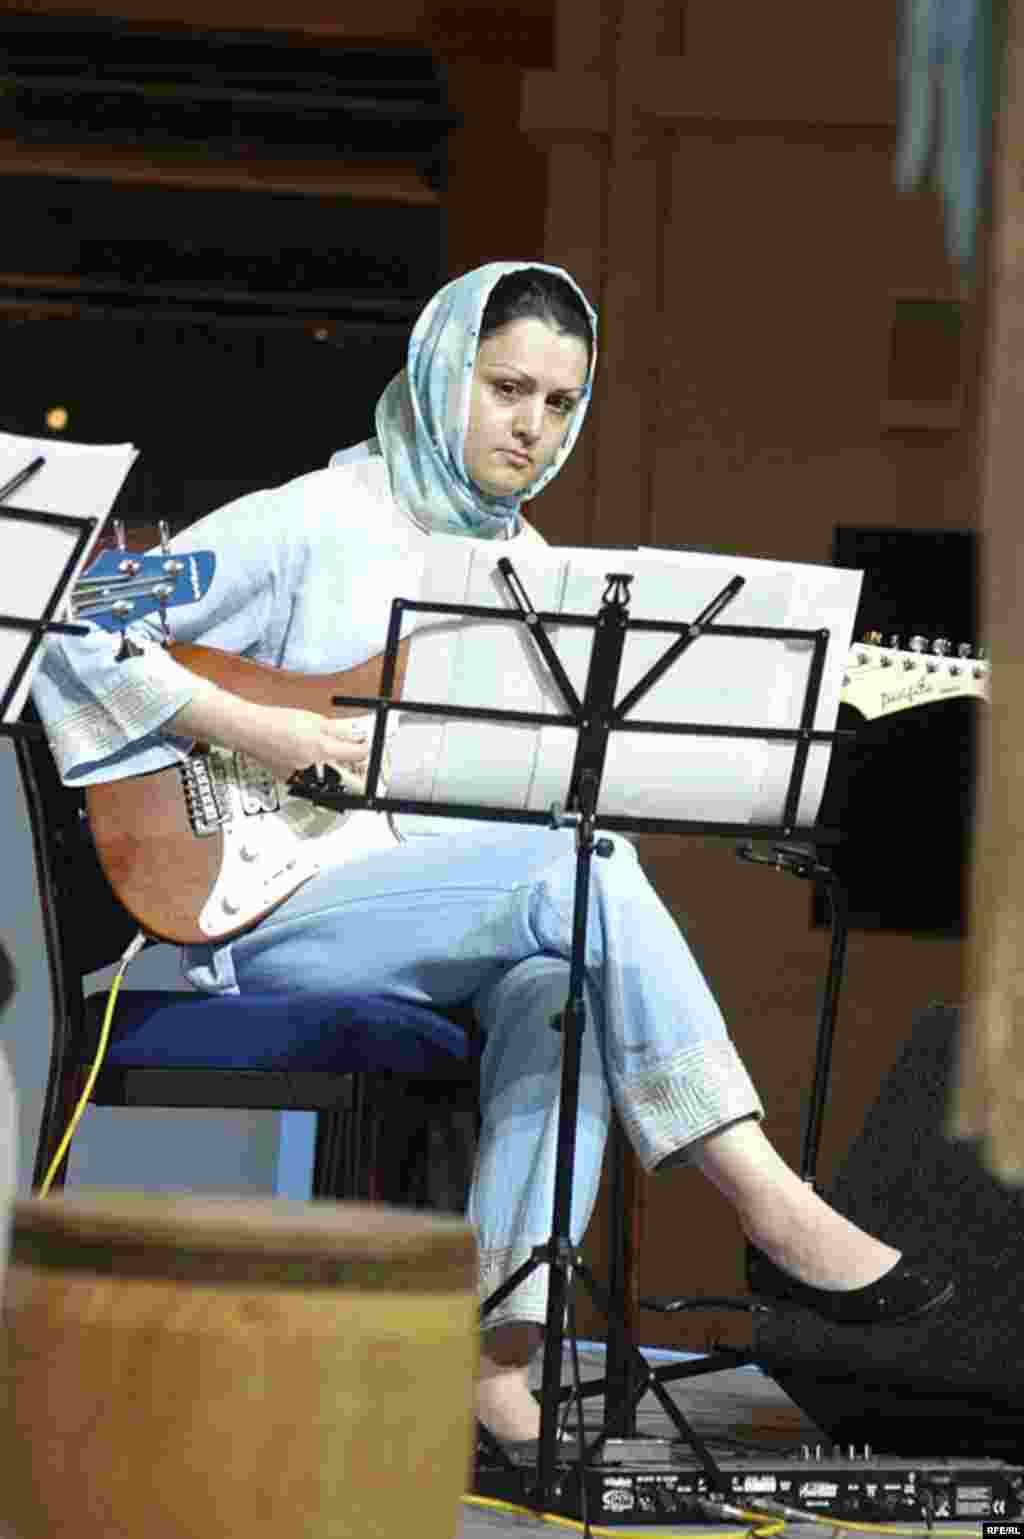 UAE, Darya Music Band, All women Iranian Band based in Iran, 03/31/2007